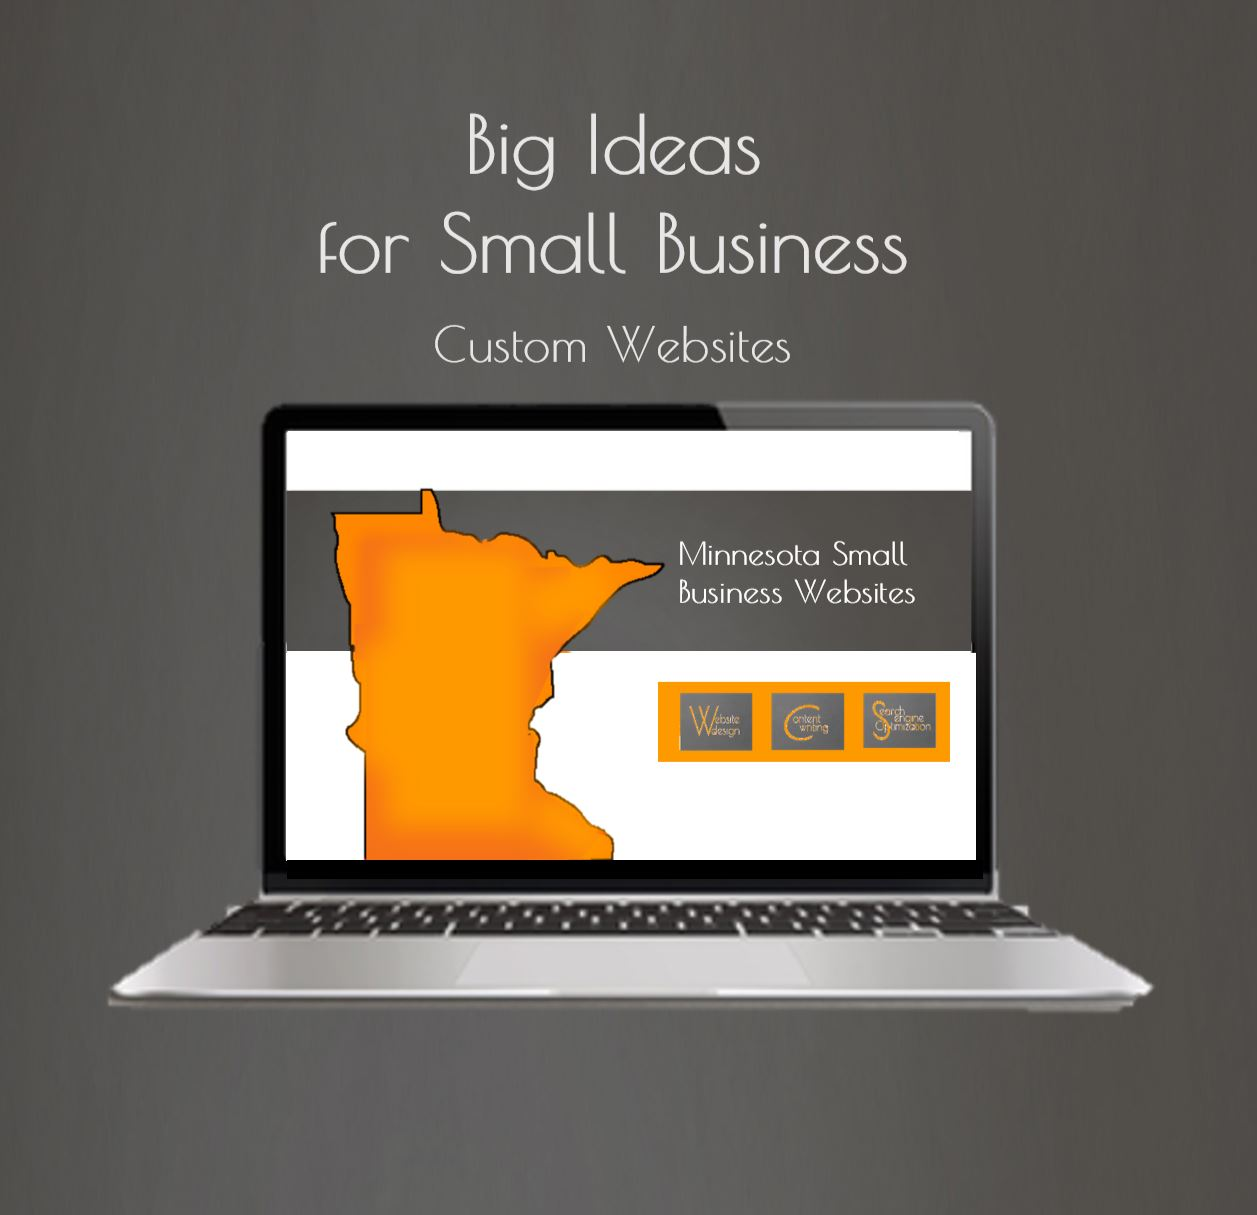 Small Business Websites 2.JPG